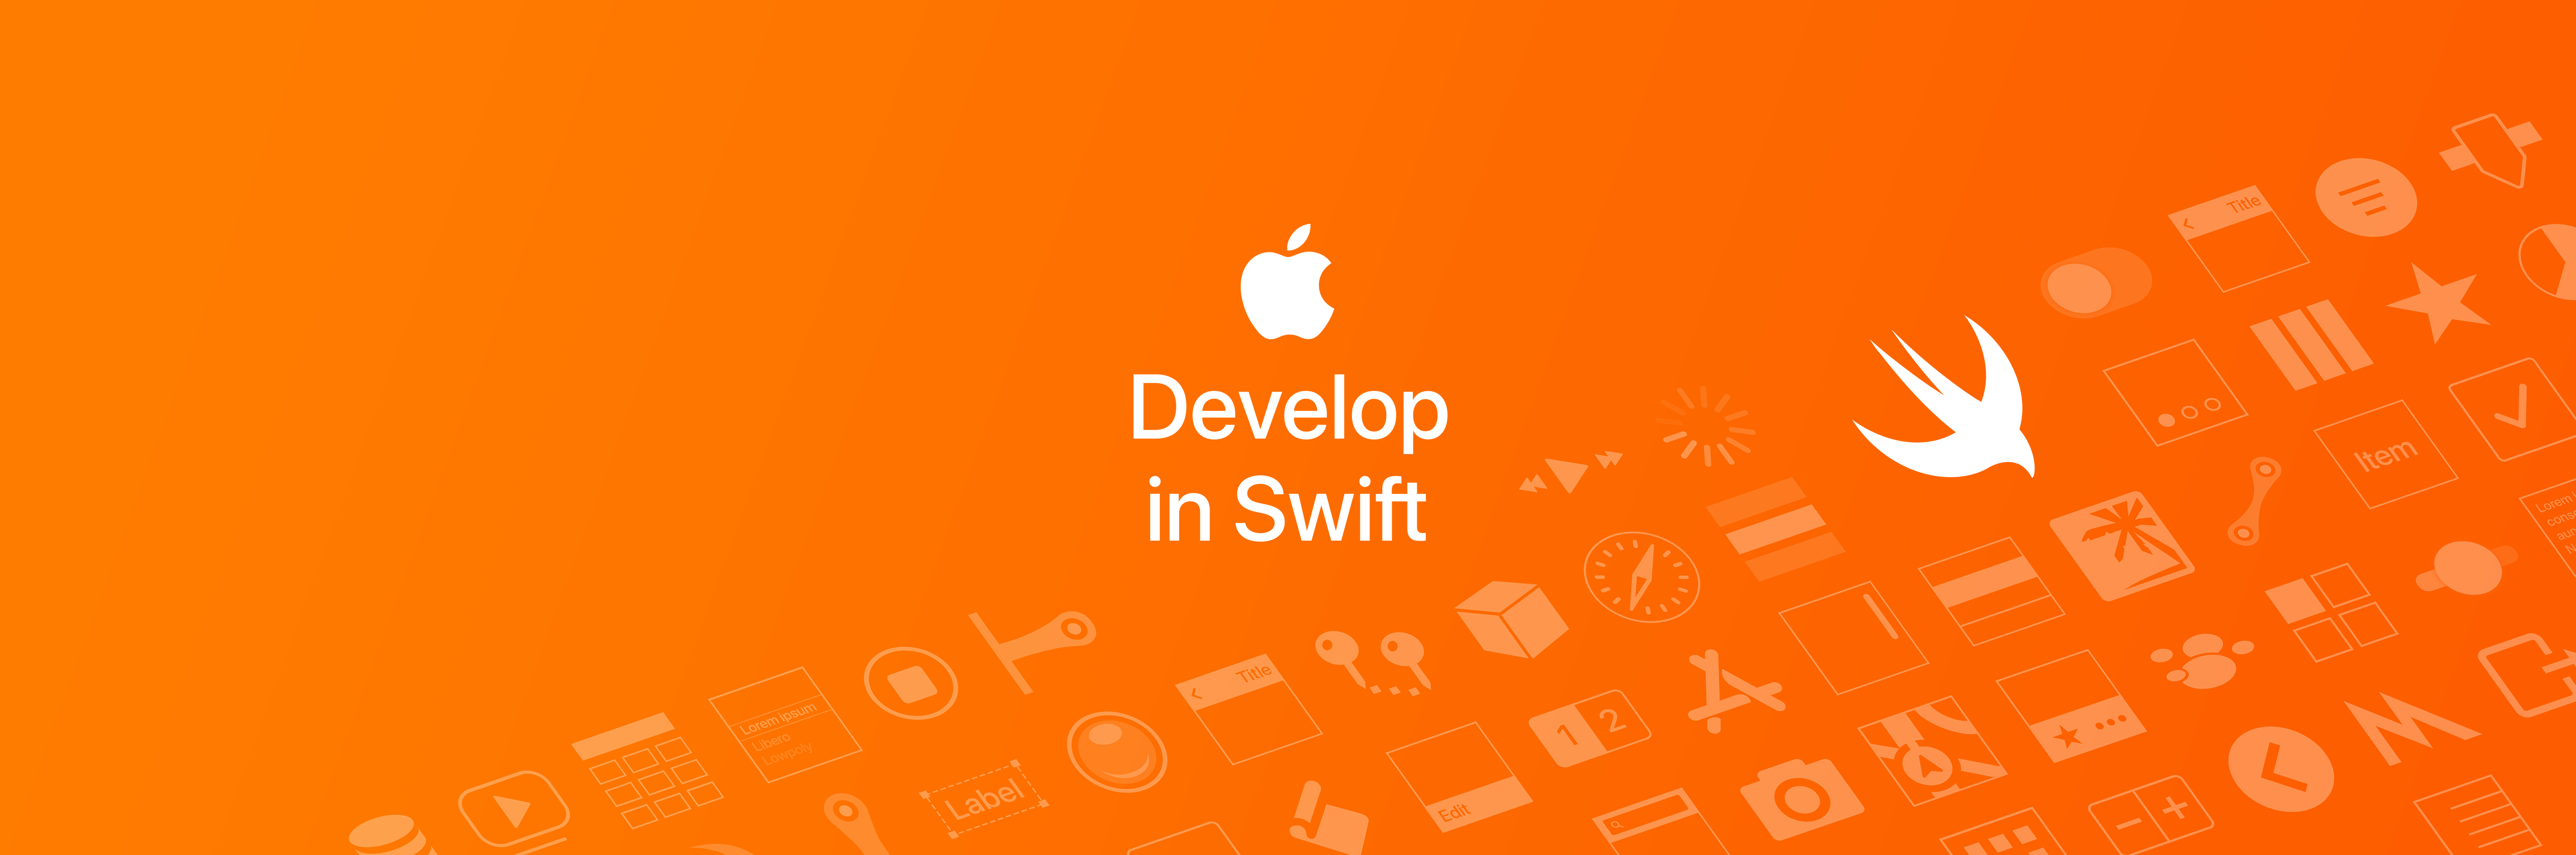 Apple launches Swift resources for learning